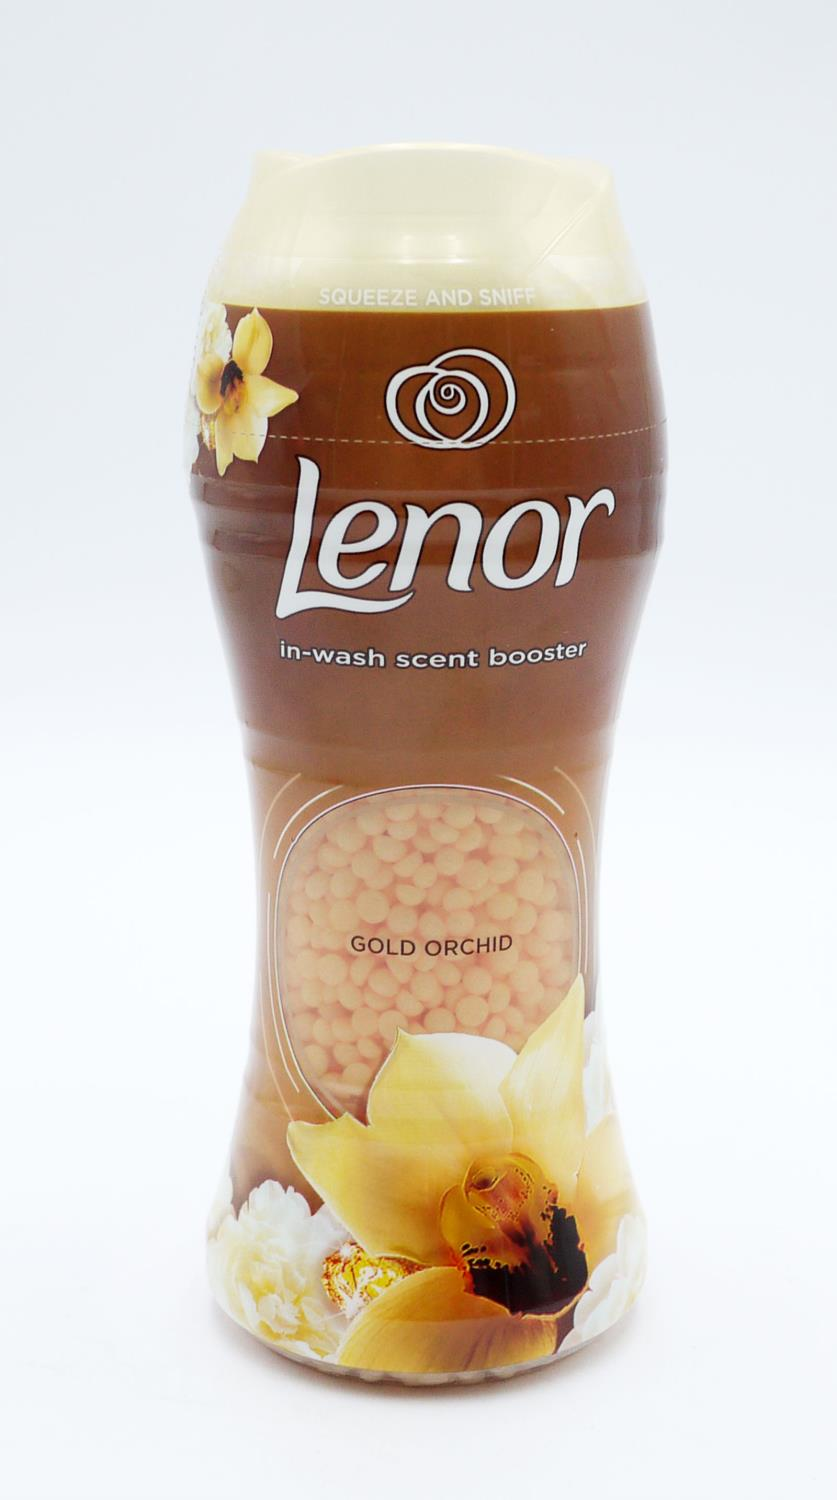 Lenor Gold Orchid Scent Booster 194g